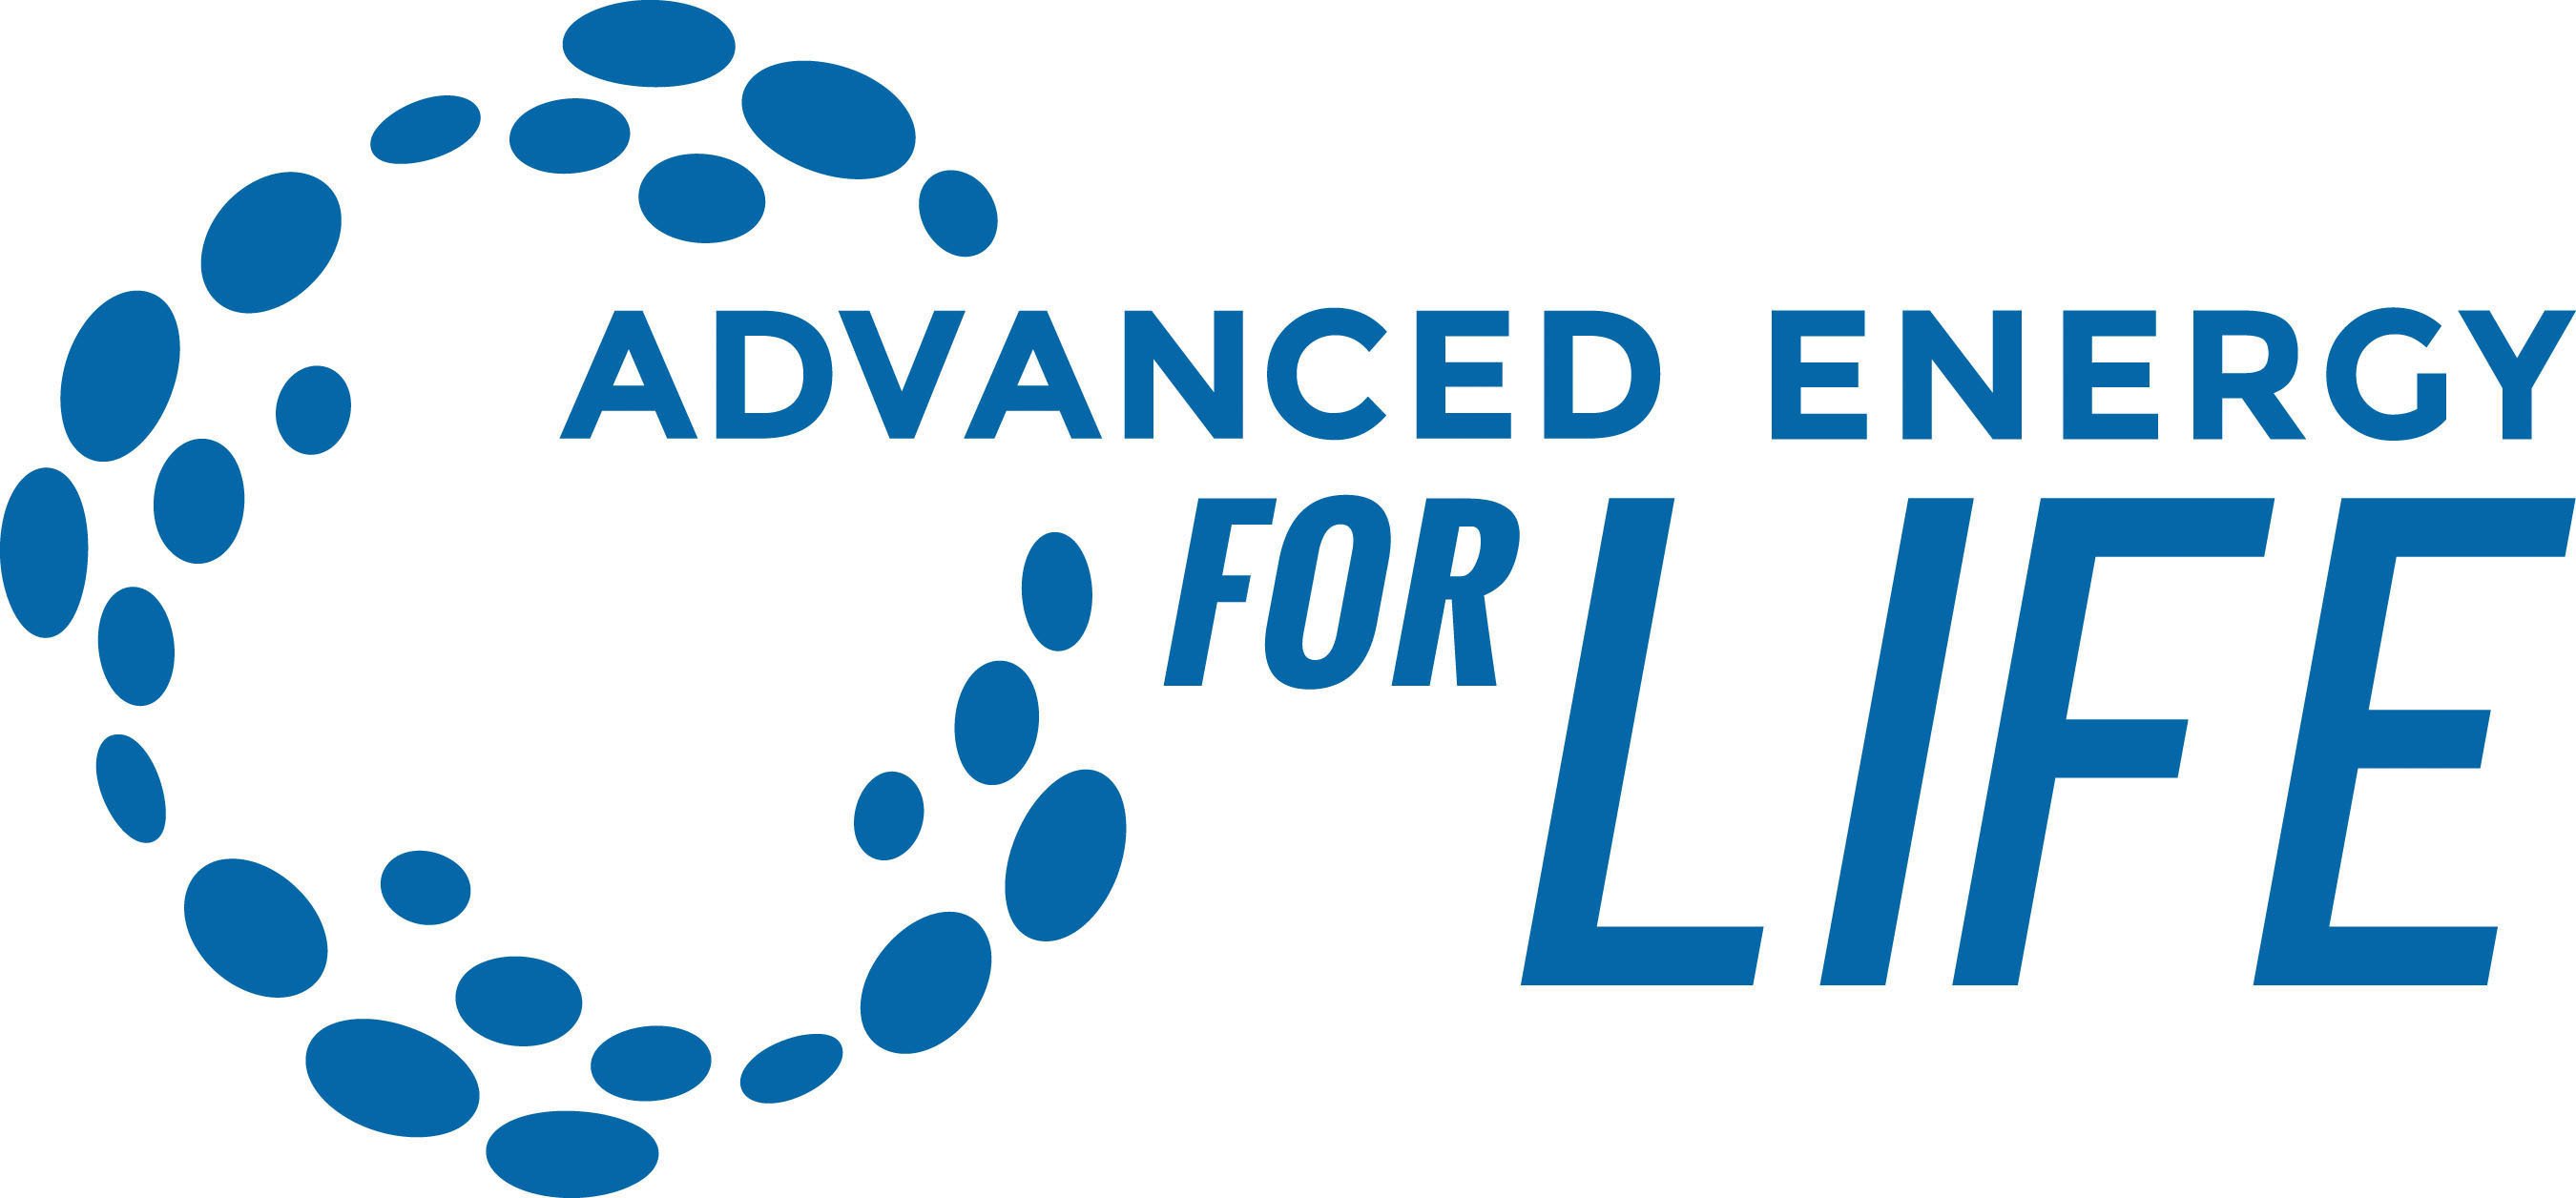 Advanced Energy for Life is a campaign to raise awareness and support to end global energy poverty, increase access to low-cost electricity and improve emissions. Please join in the campaign. Visit us at AdvancedEnergyForLife.com and Advanced Energy for Life on Facebook, YouTube, Tumblr, Google+ and Vine. Use our Twitter handle @AdvancedEnergy.